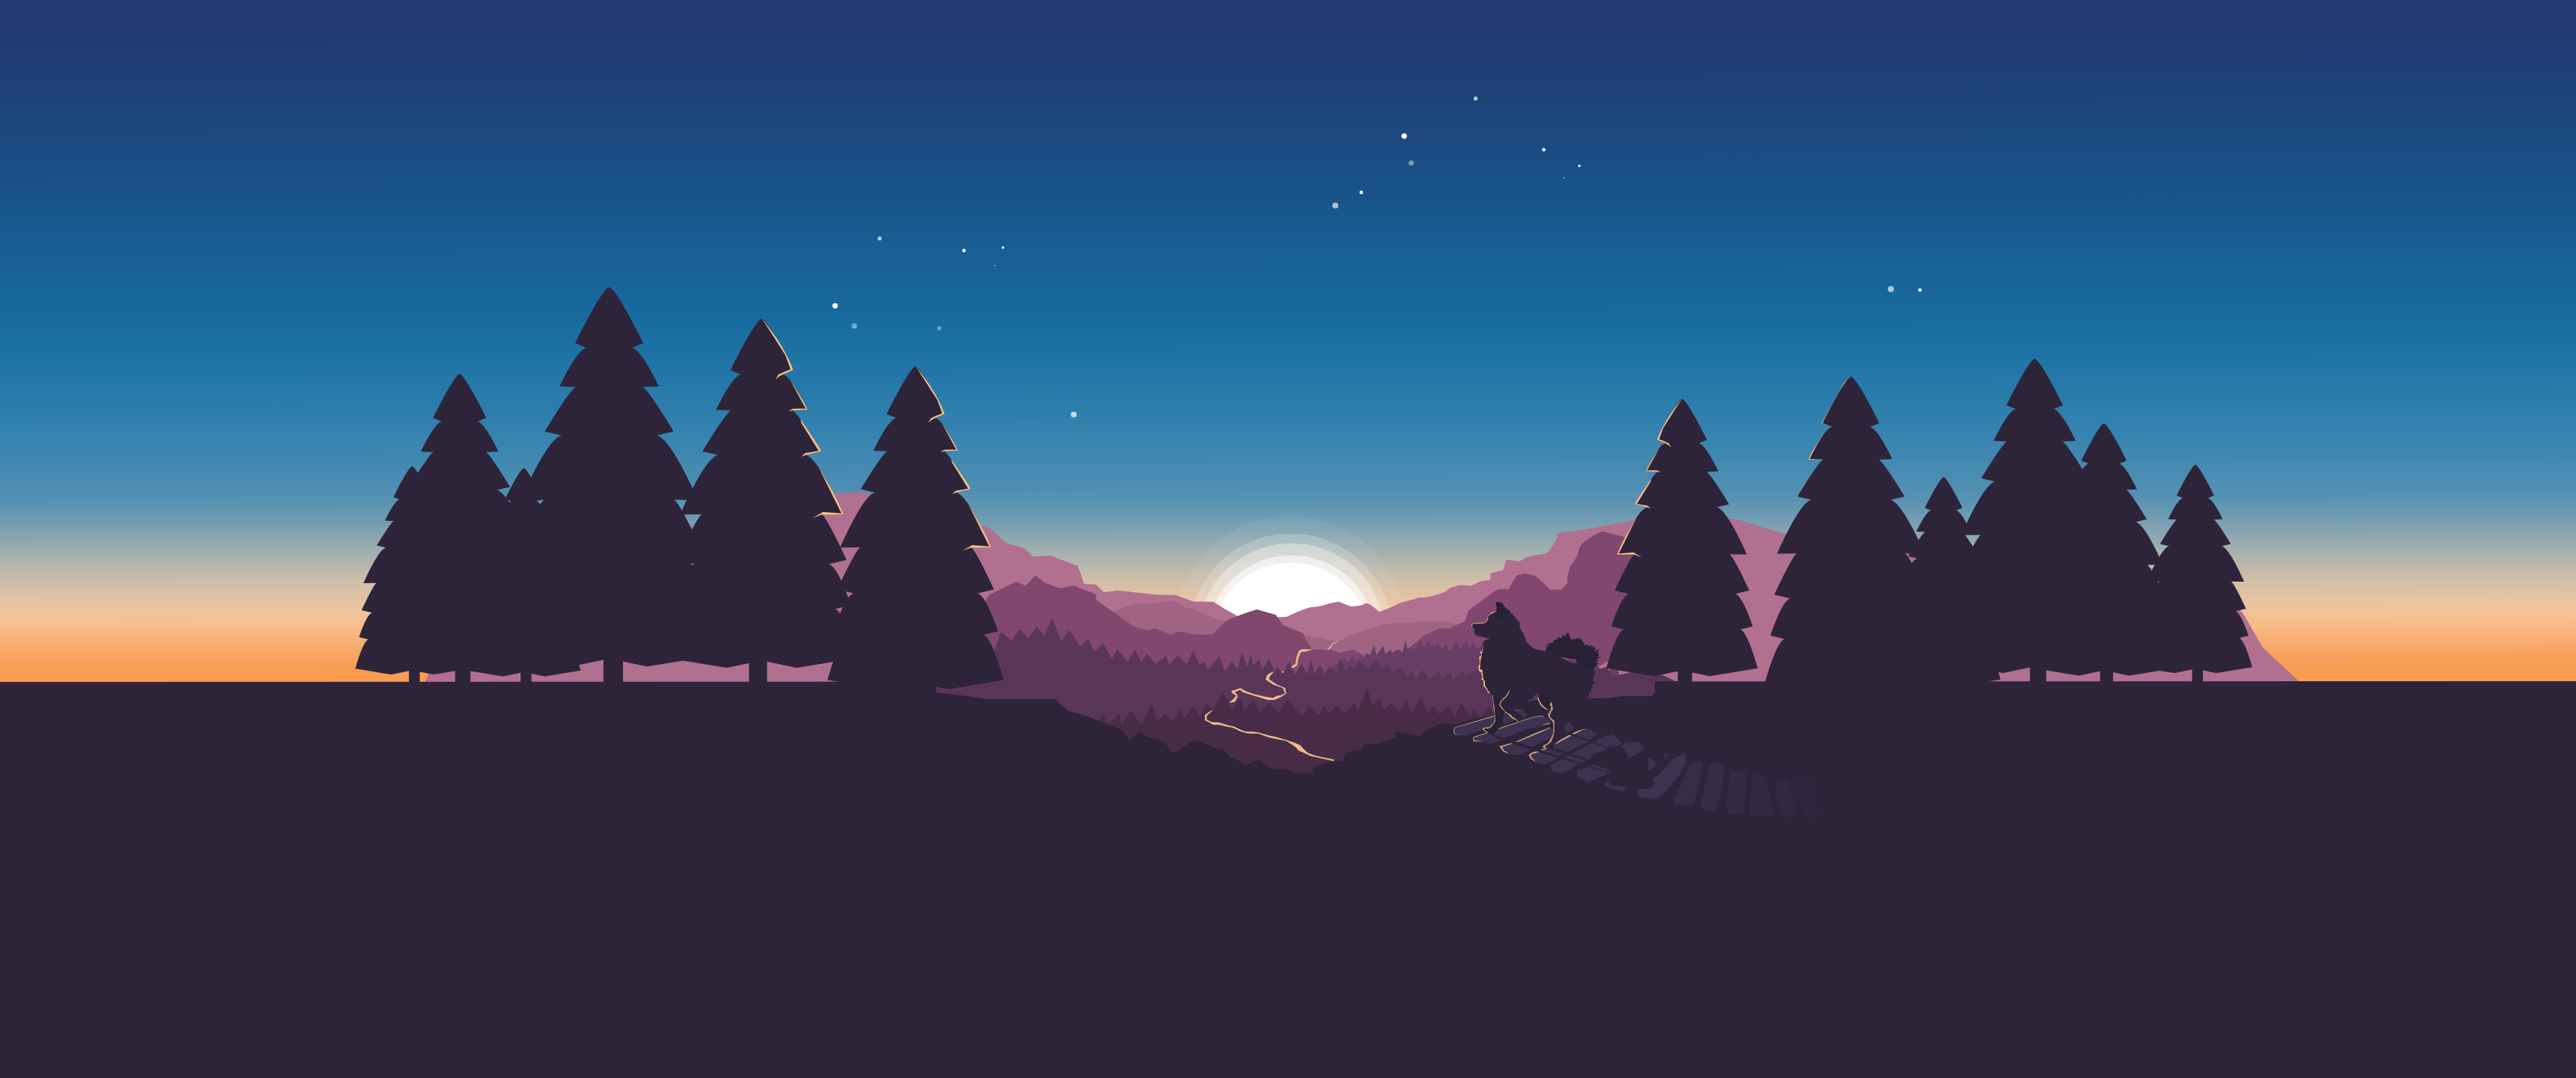 Vector Wallpaper 3440x1440 By Friekdesign On Deviantart